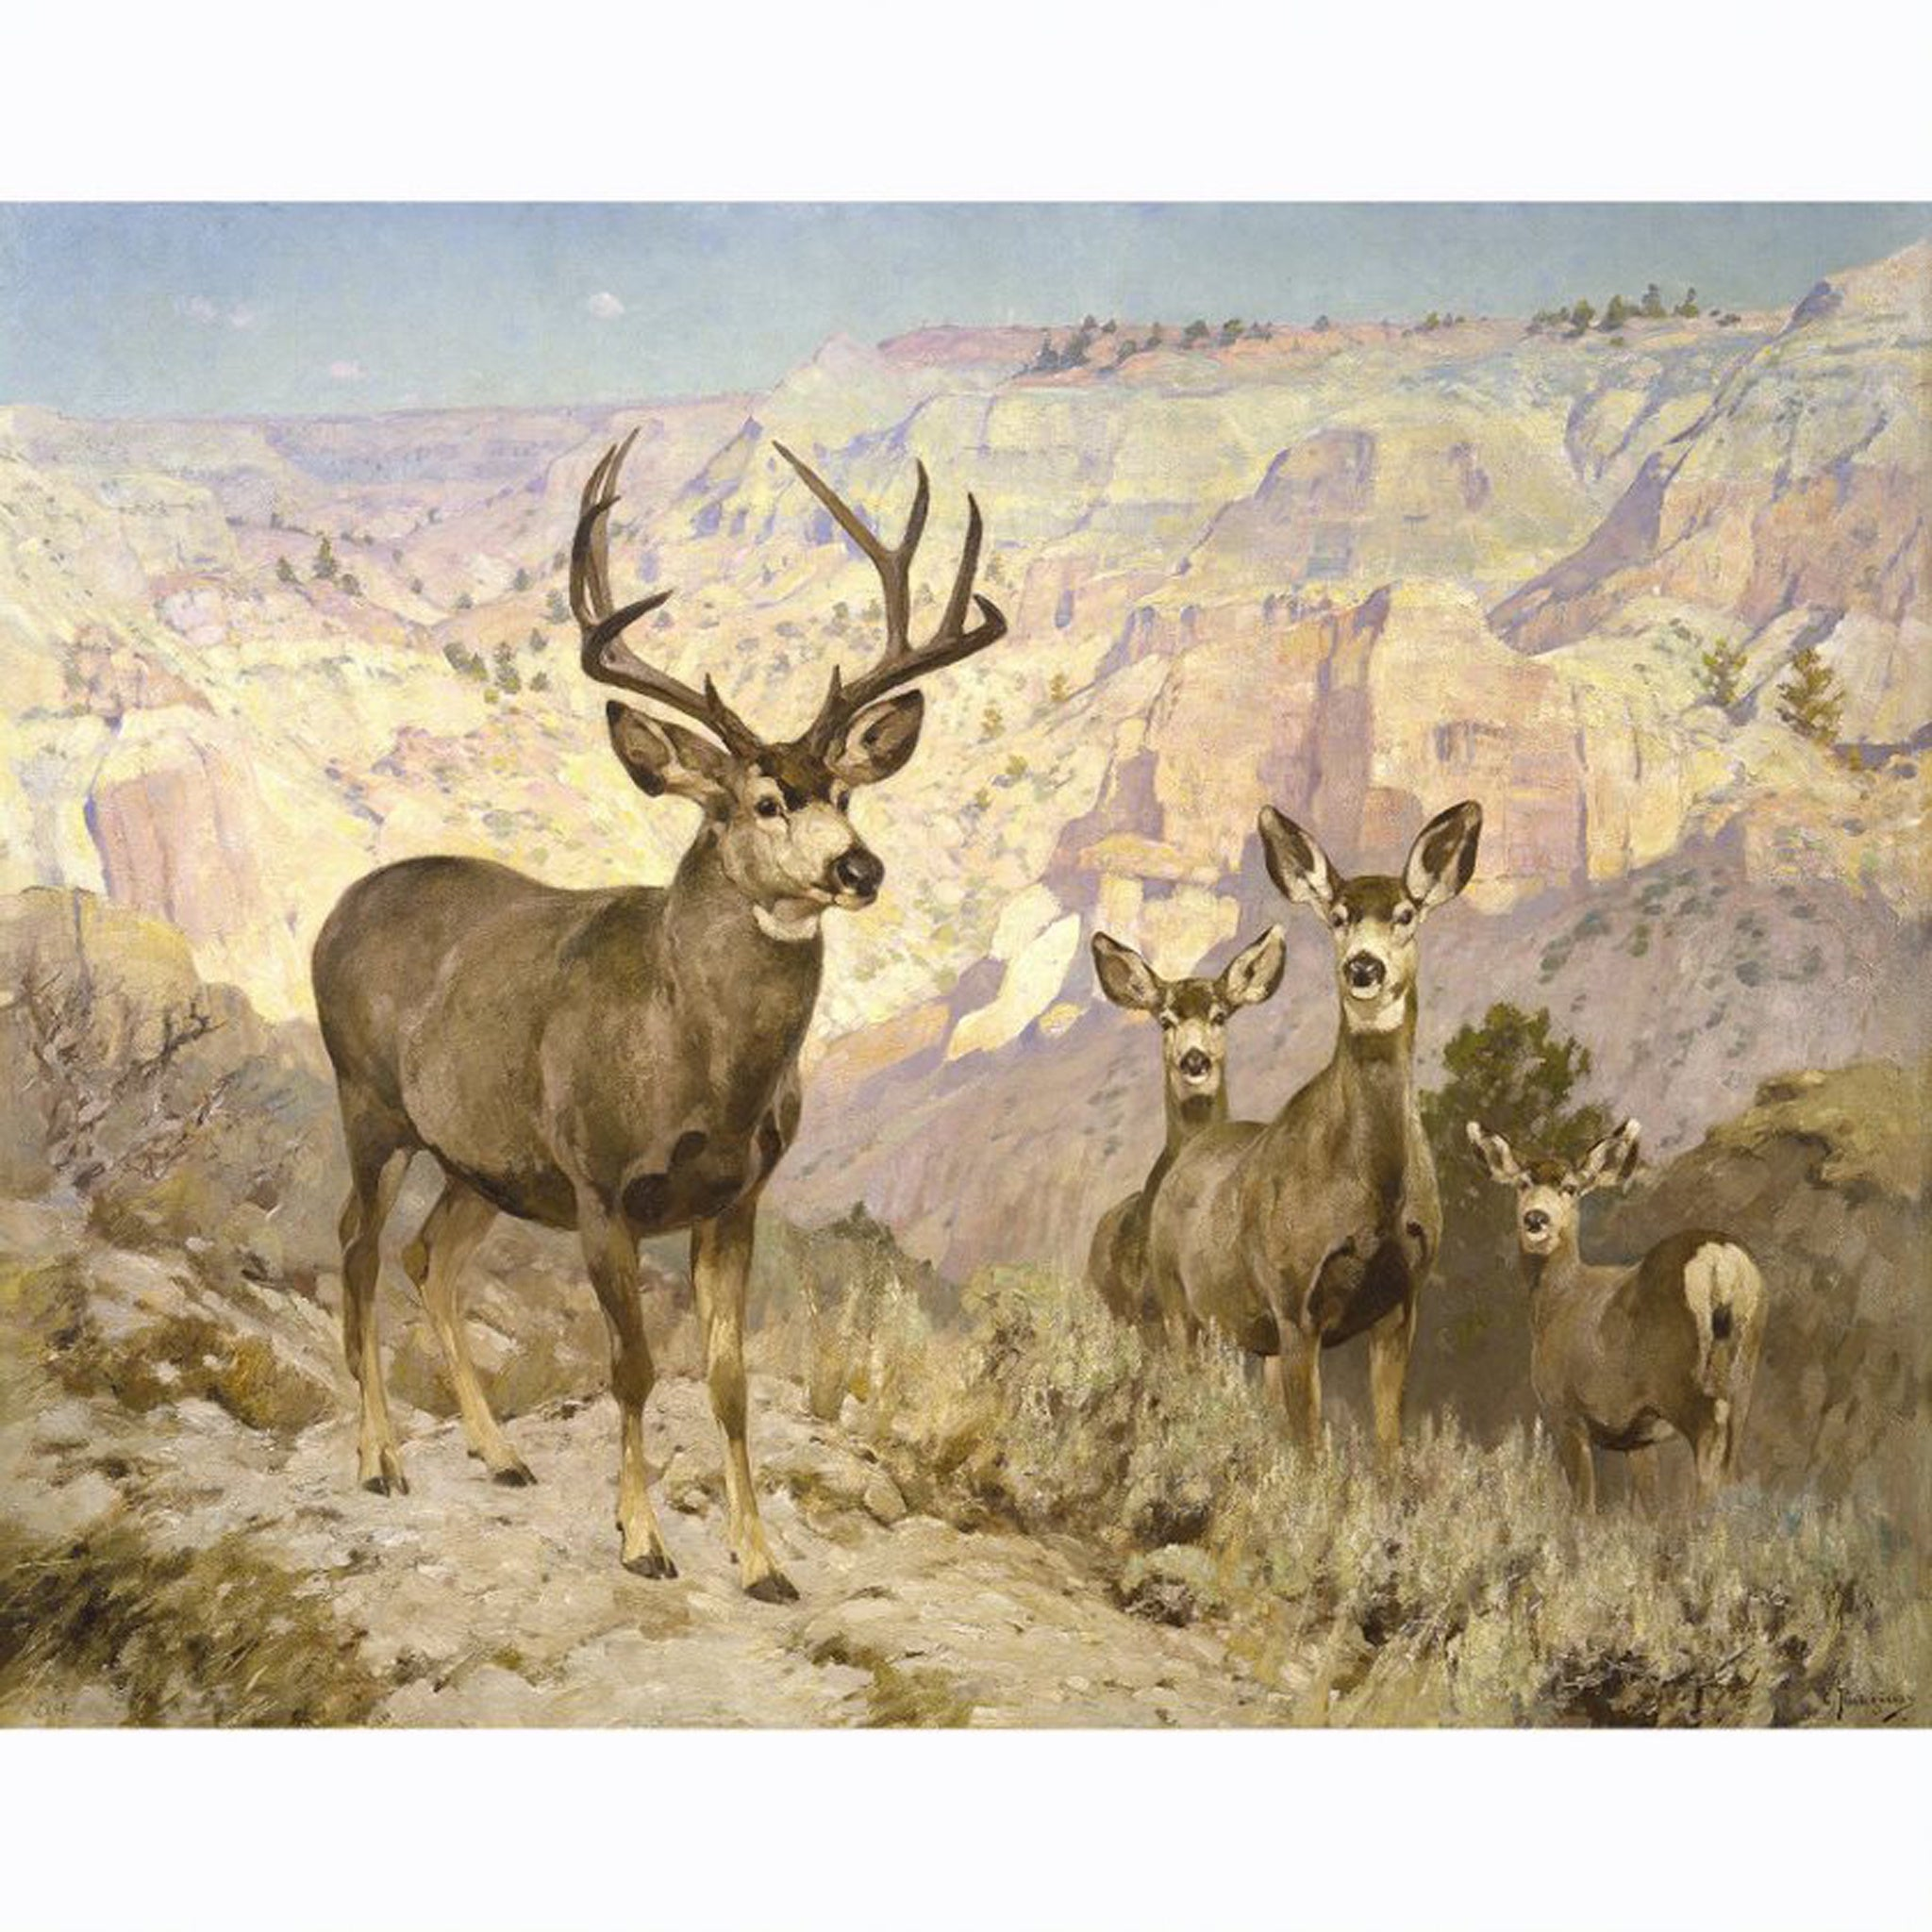 Mule Deer in the Bad Lands by Carl Rungius